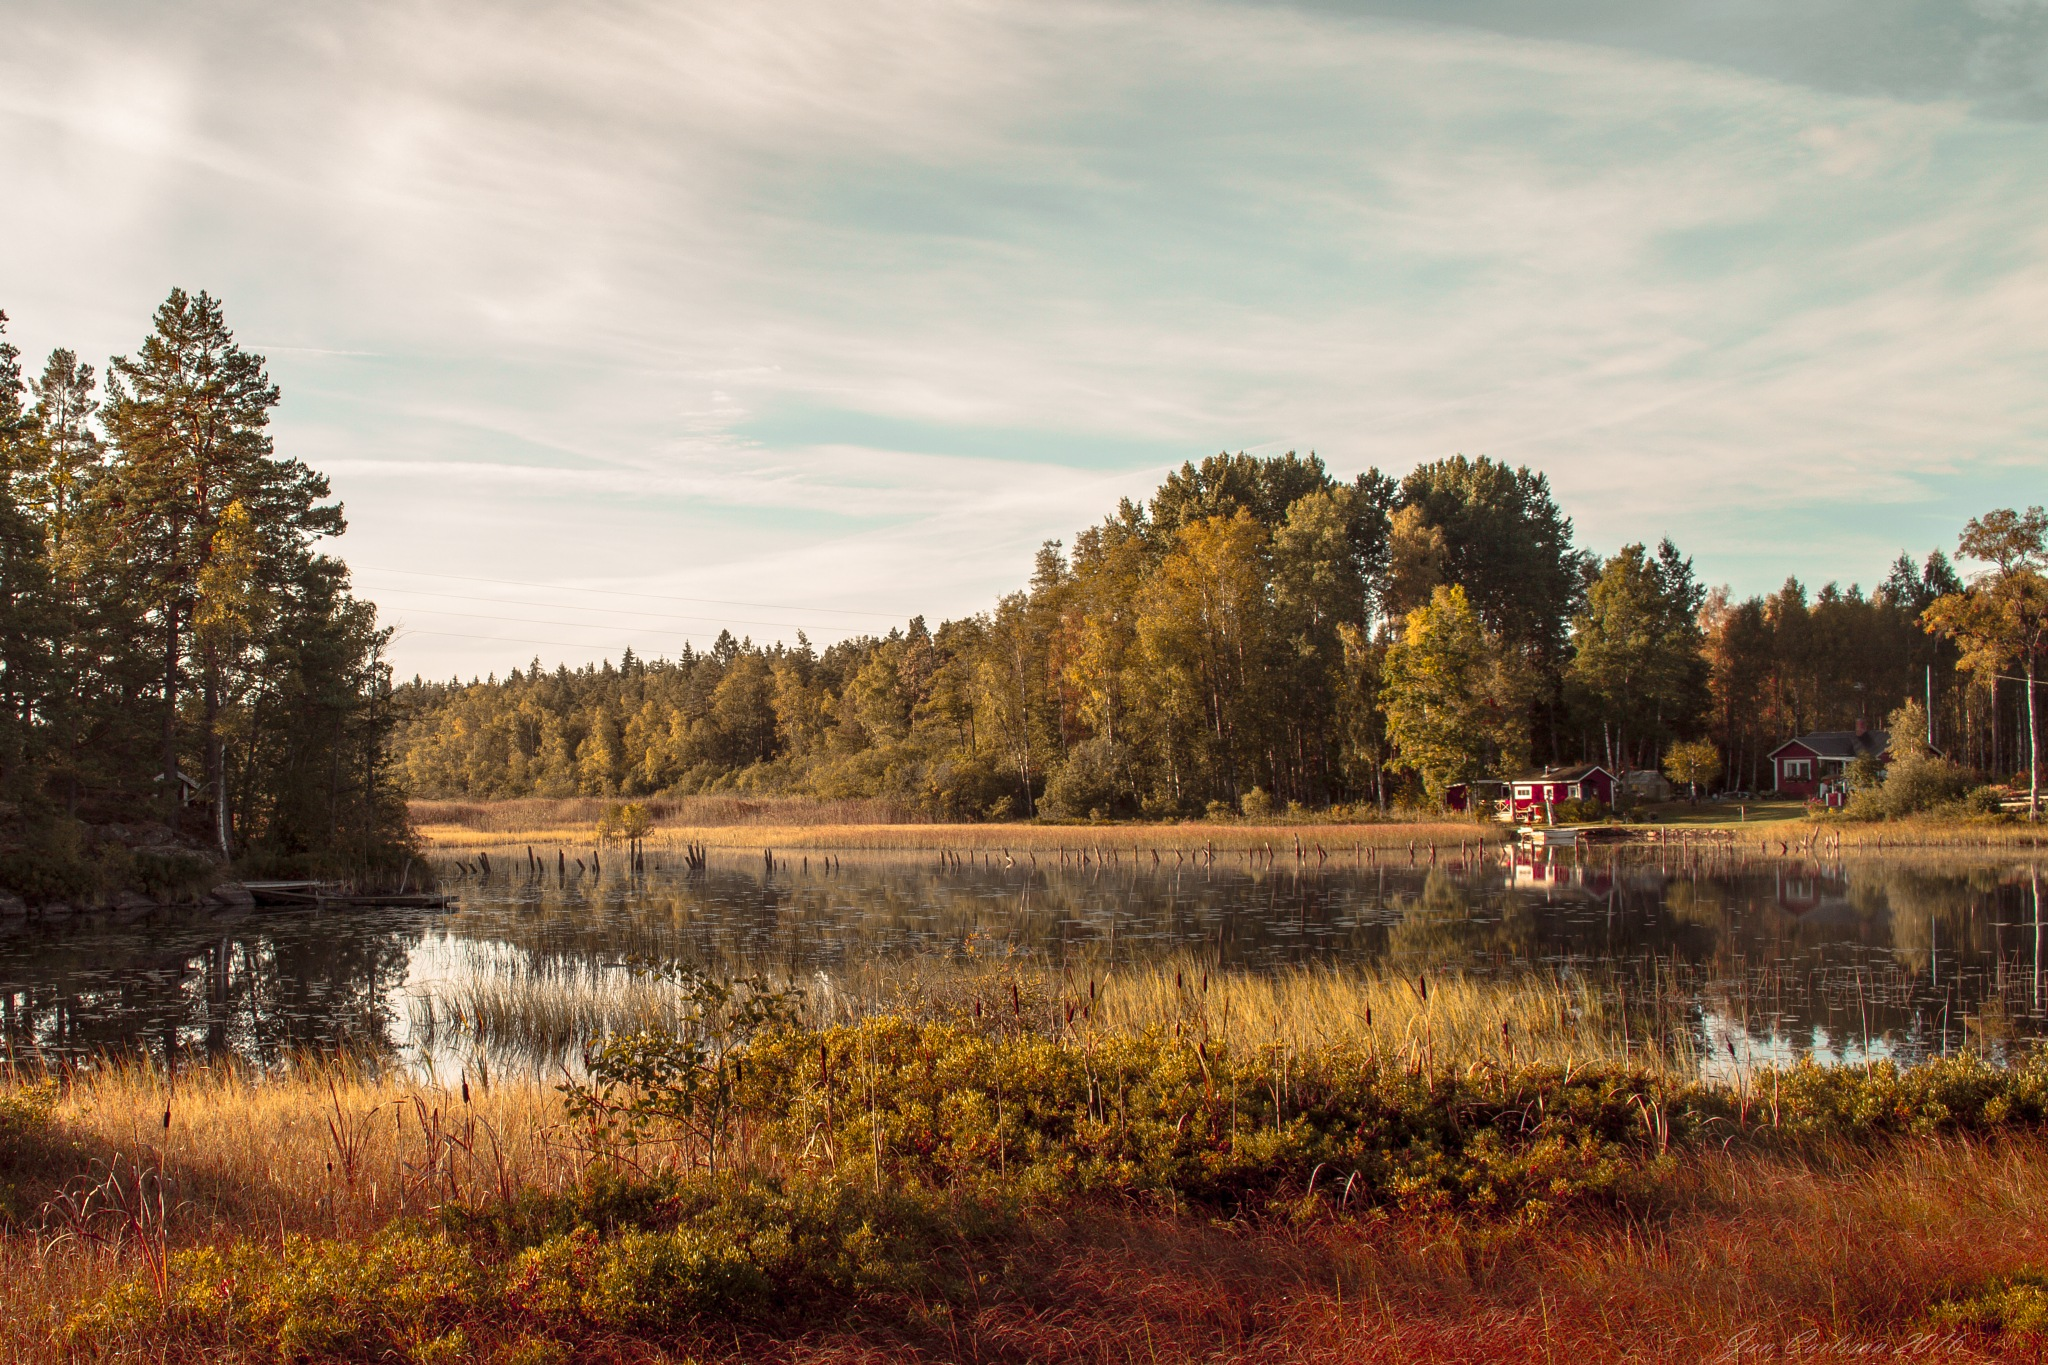 The Beautiful Colors of a September Morning by carljan w carlsson